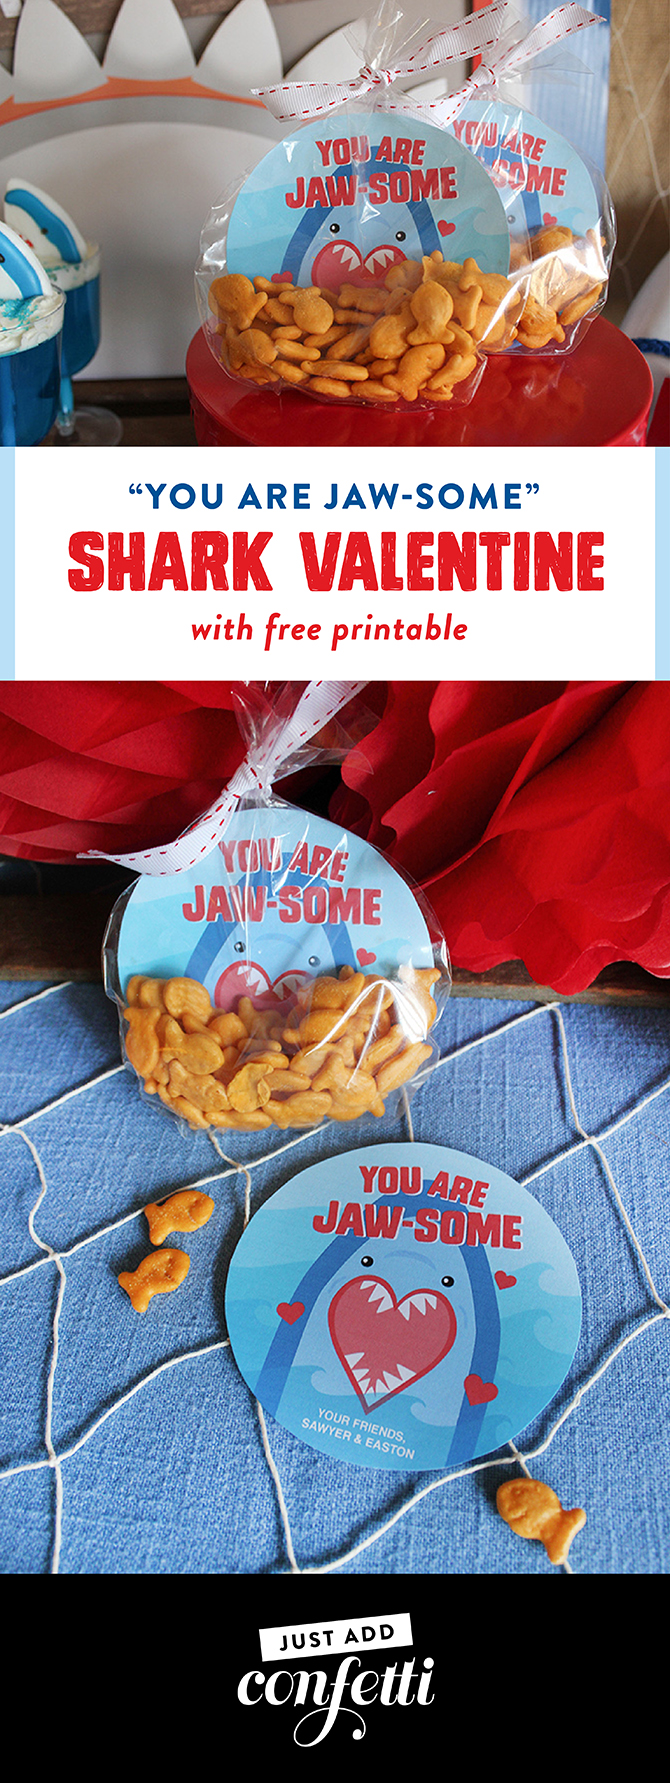 shark valentine printable, Jaw-some, Valentines party, kids valentine's day party, kids valentines party, shark party, valentine's day, fin-tastic, free printables, party ideas, party inspiration, valentine's day shark party, valentines shark party, Just Add Confetti, shark valentine, shark valentine free printable, free valentine printable, non-candy valentine, free printable, you care jawsome valentine printable